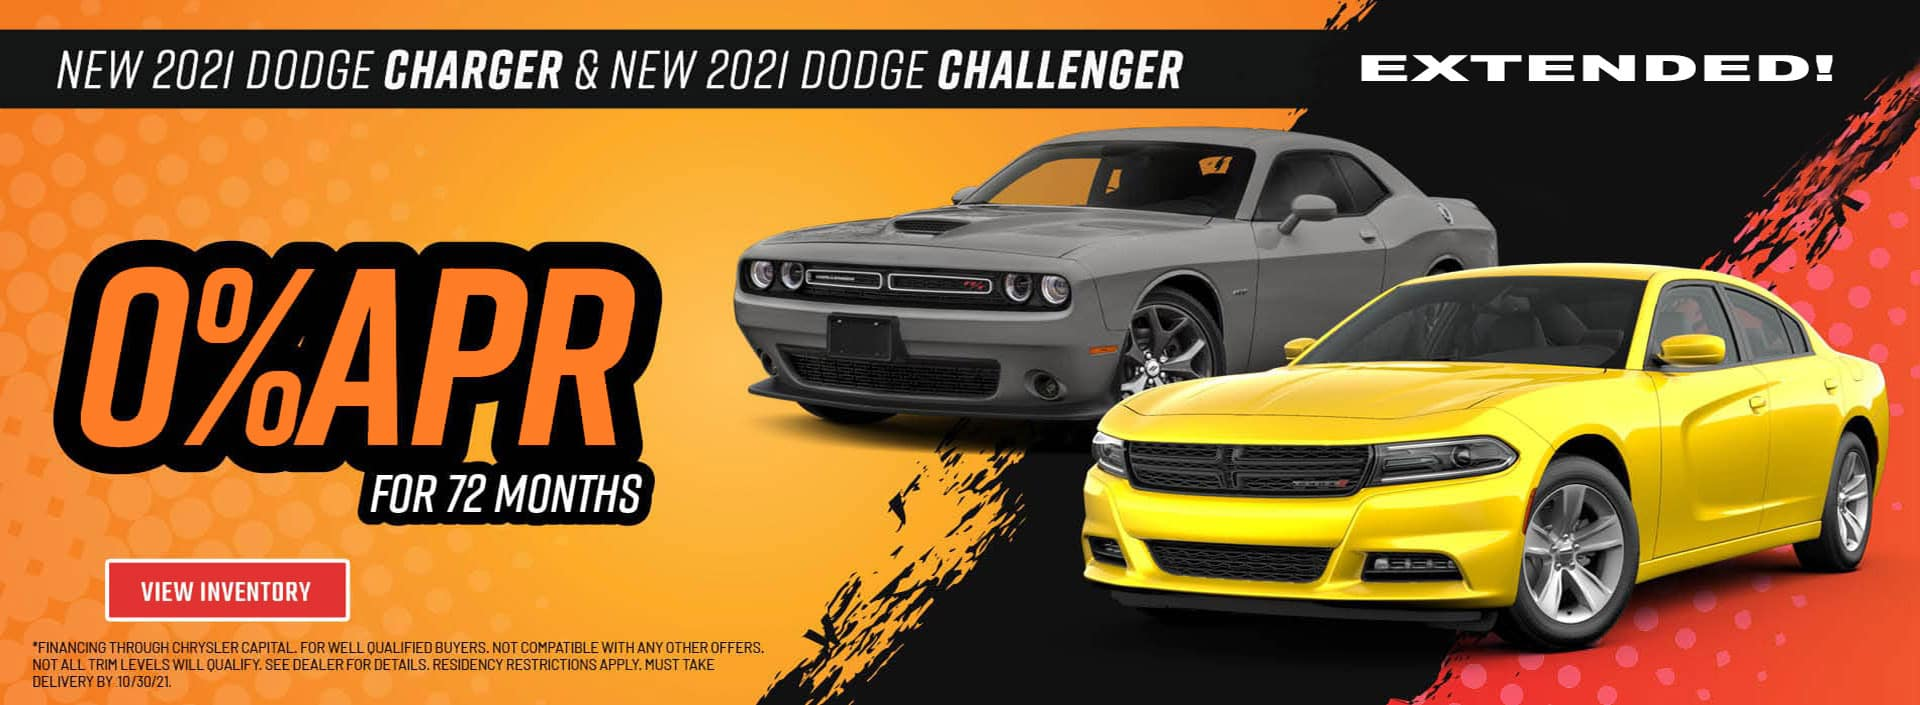 CHARGER-CHALLENGER-0%-OCT-2021 1920×705